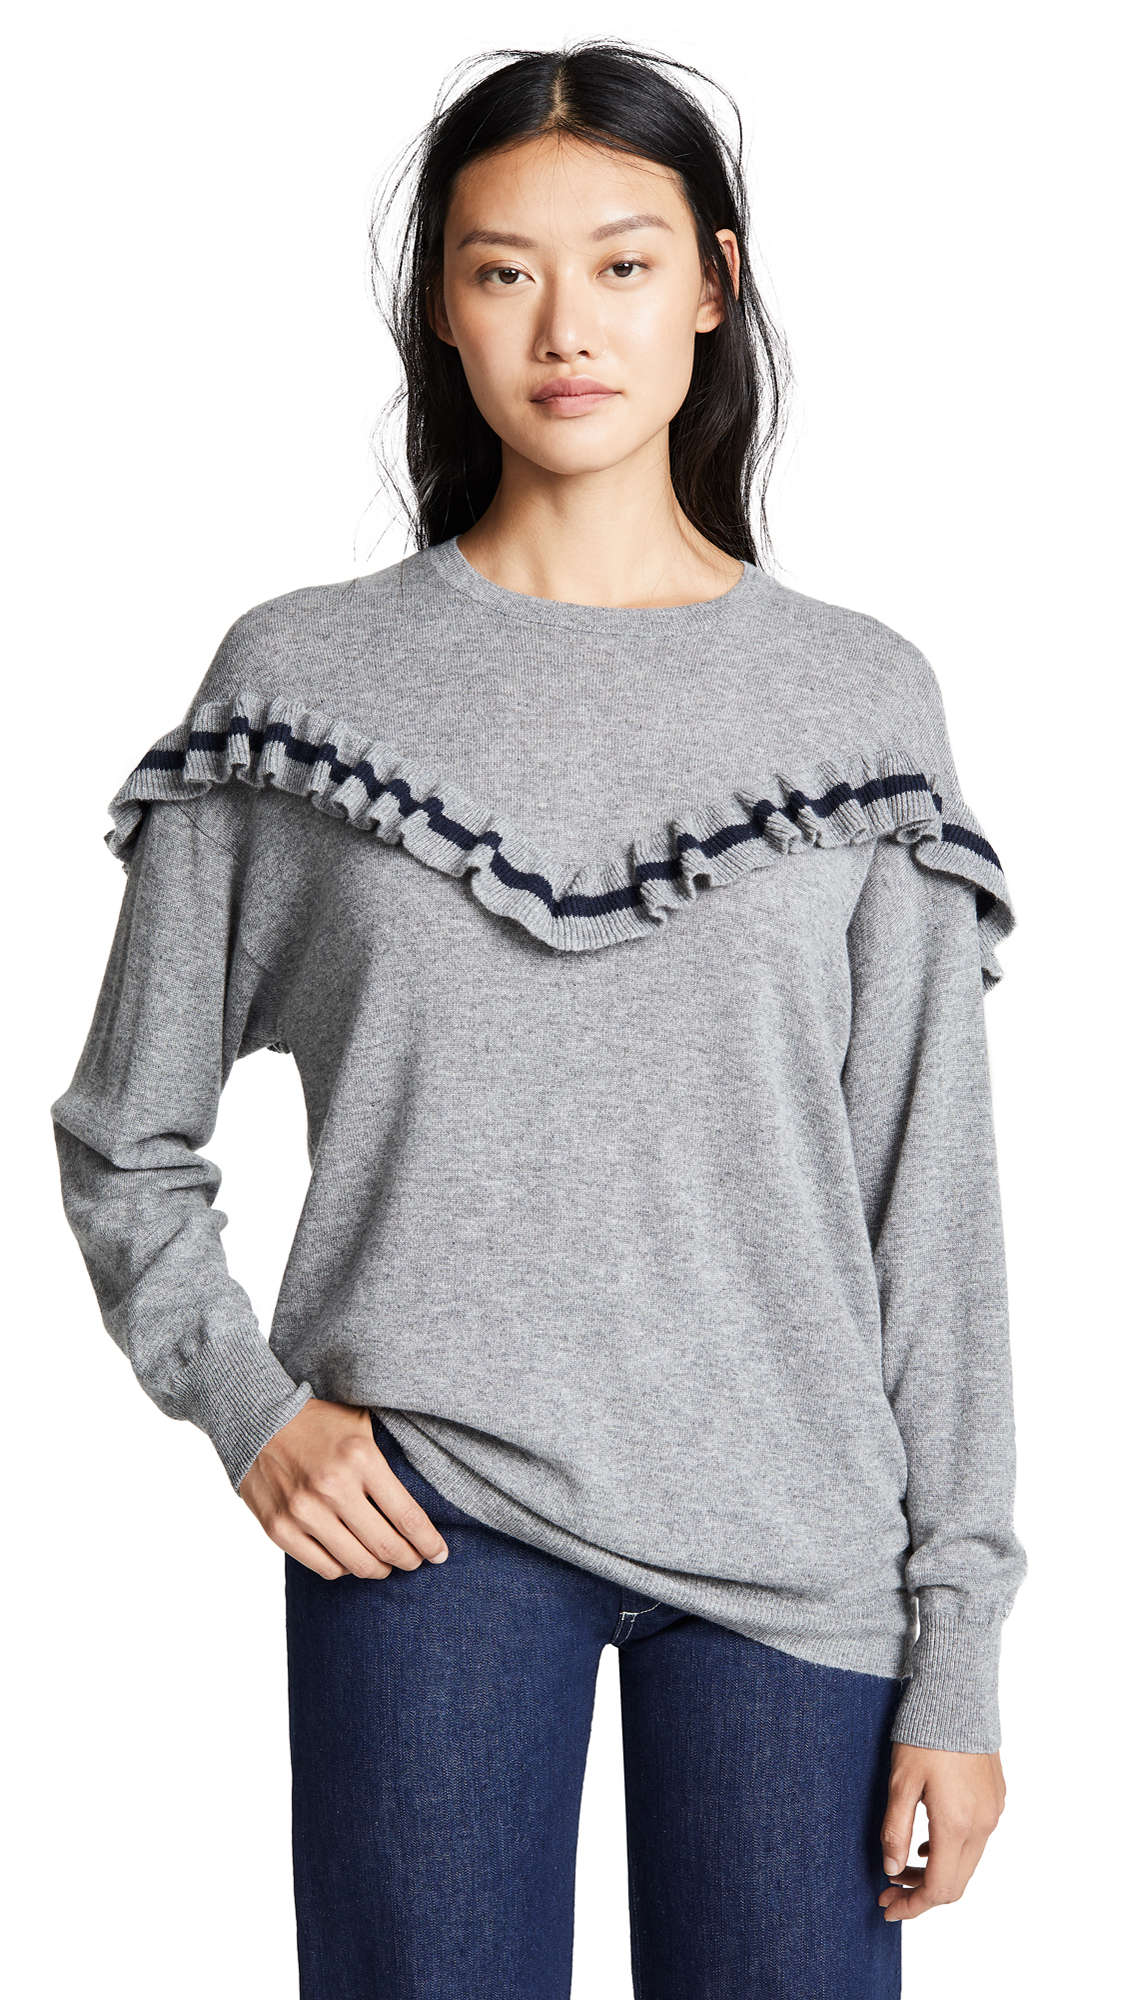 Autumn Cashmere Oversize Cashmere Sweater In Cement/Navy